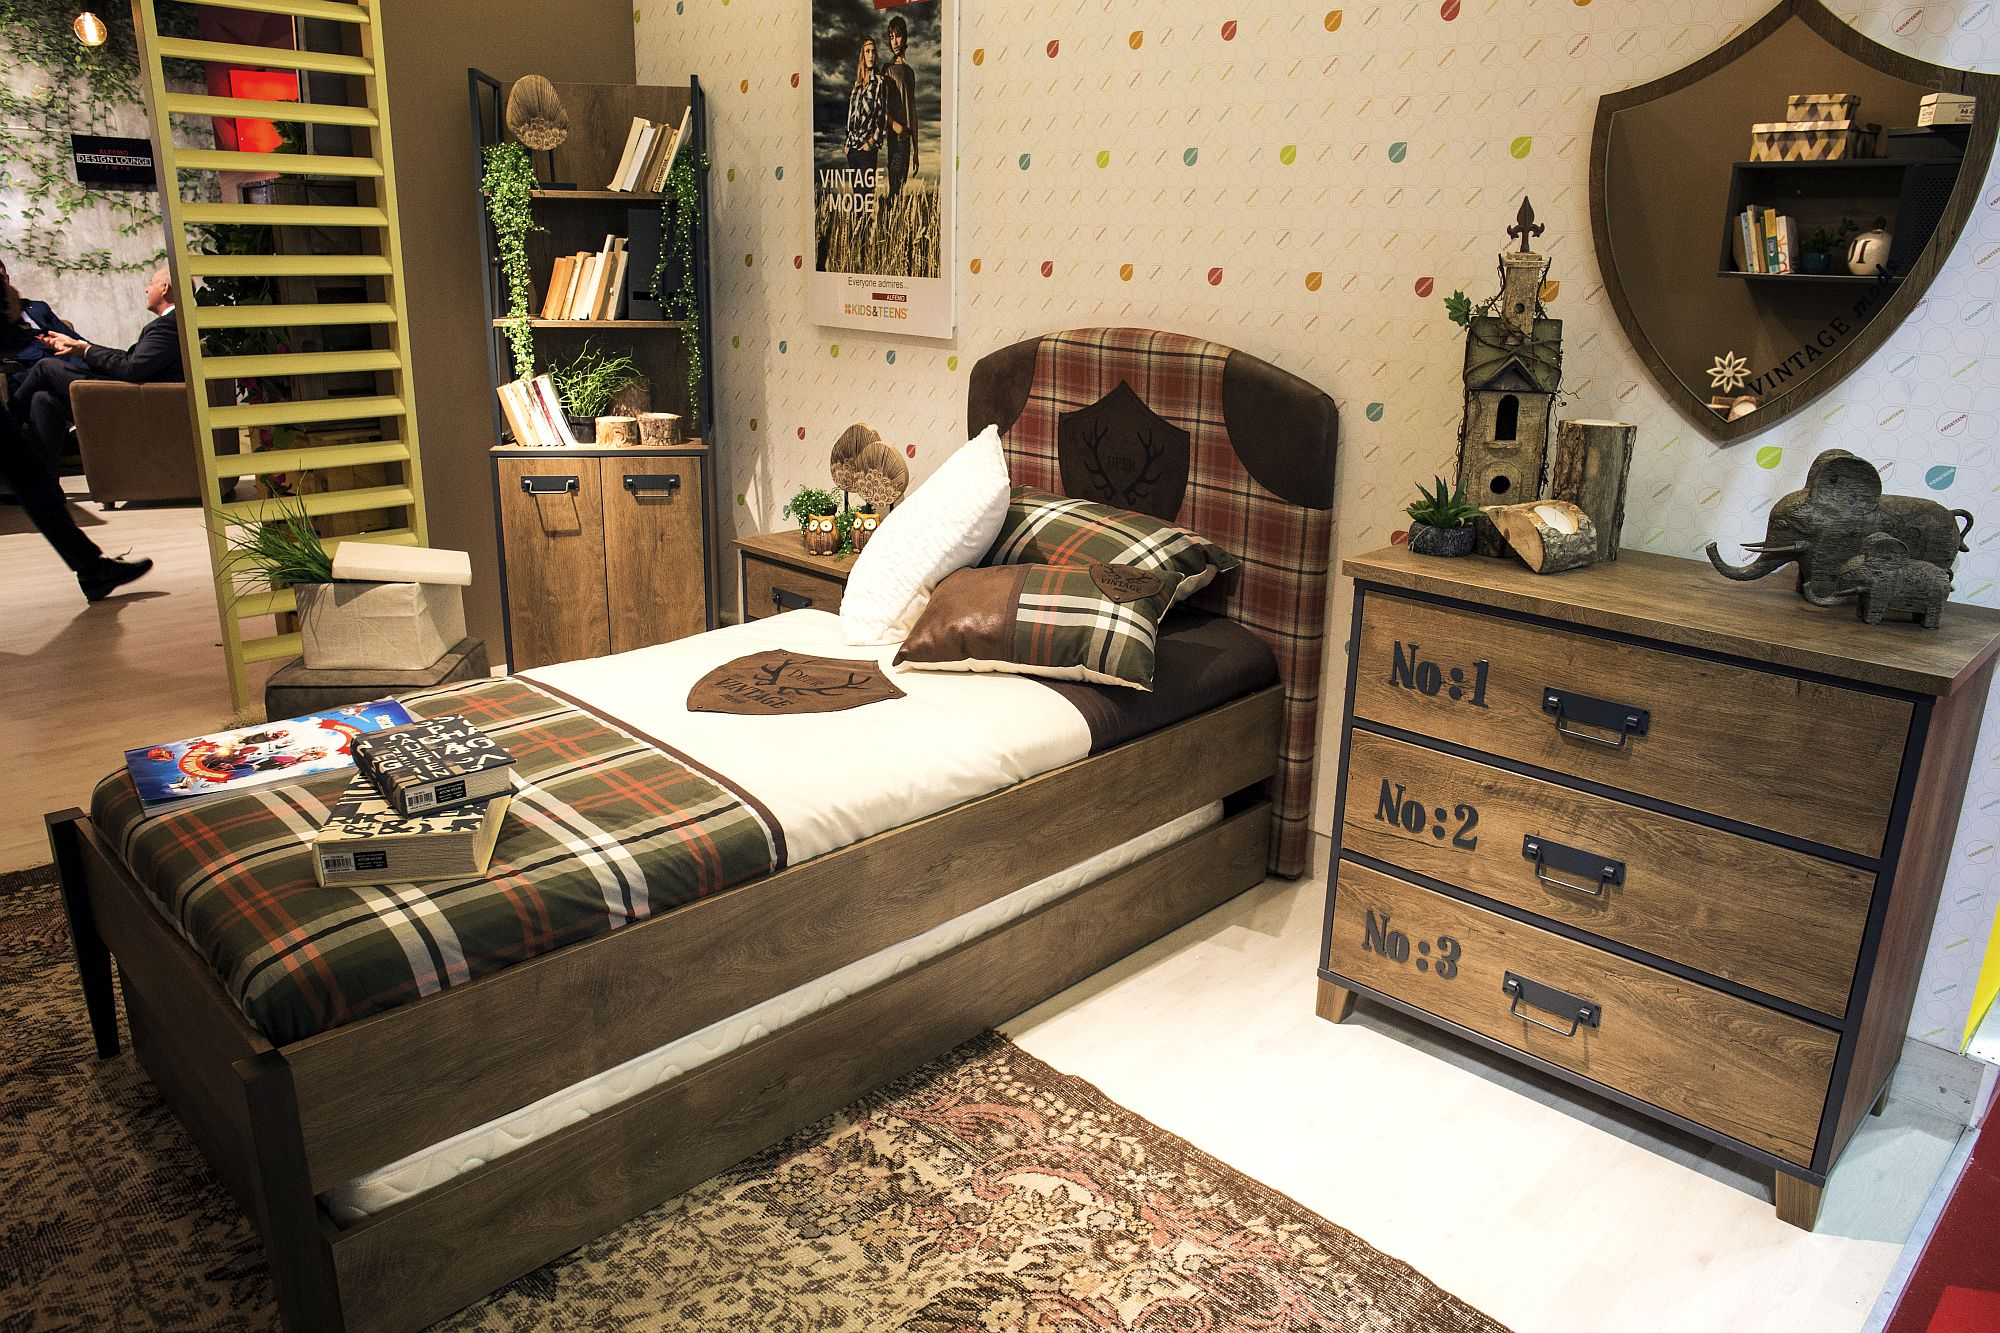 Beautiful kids' room with decor that complements its overall style and theme